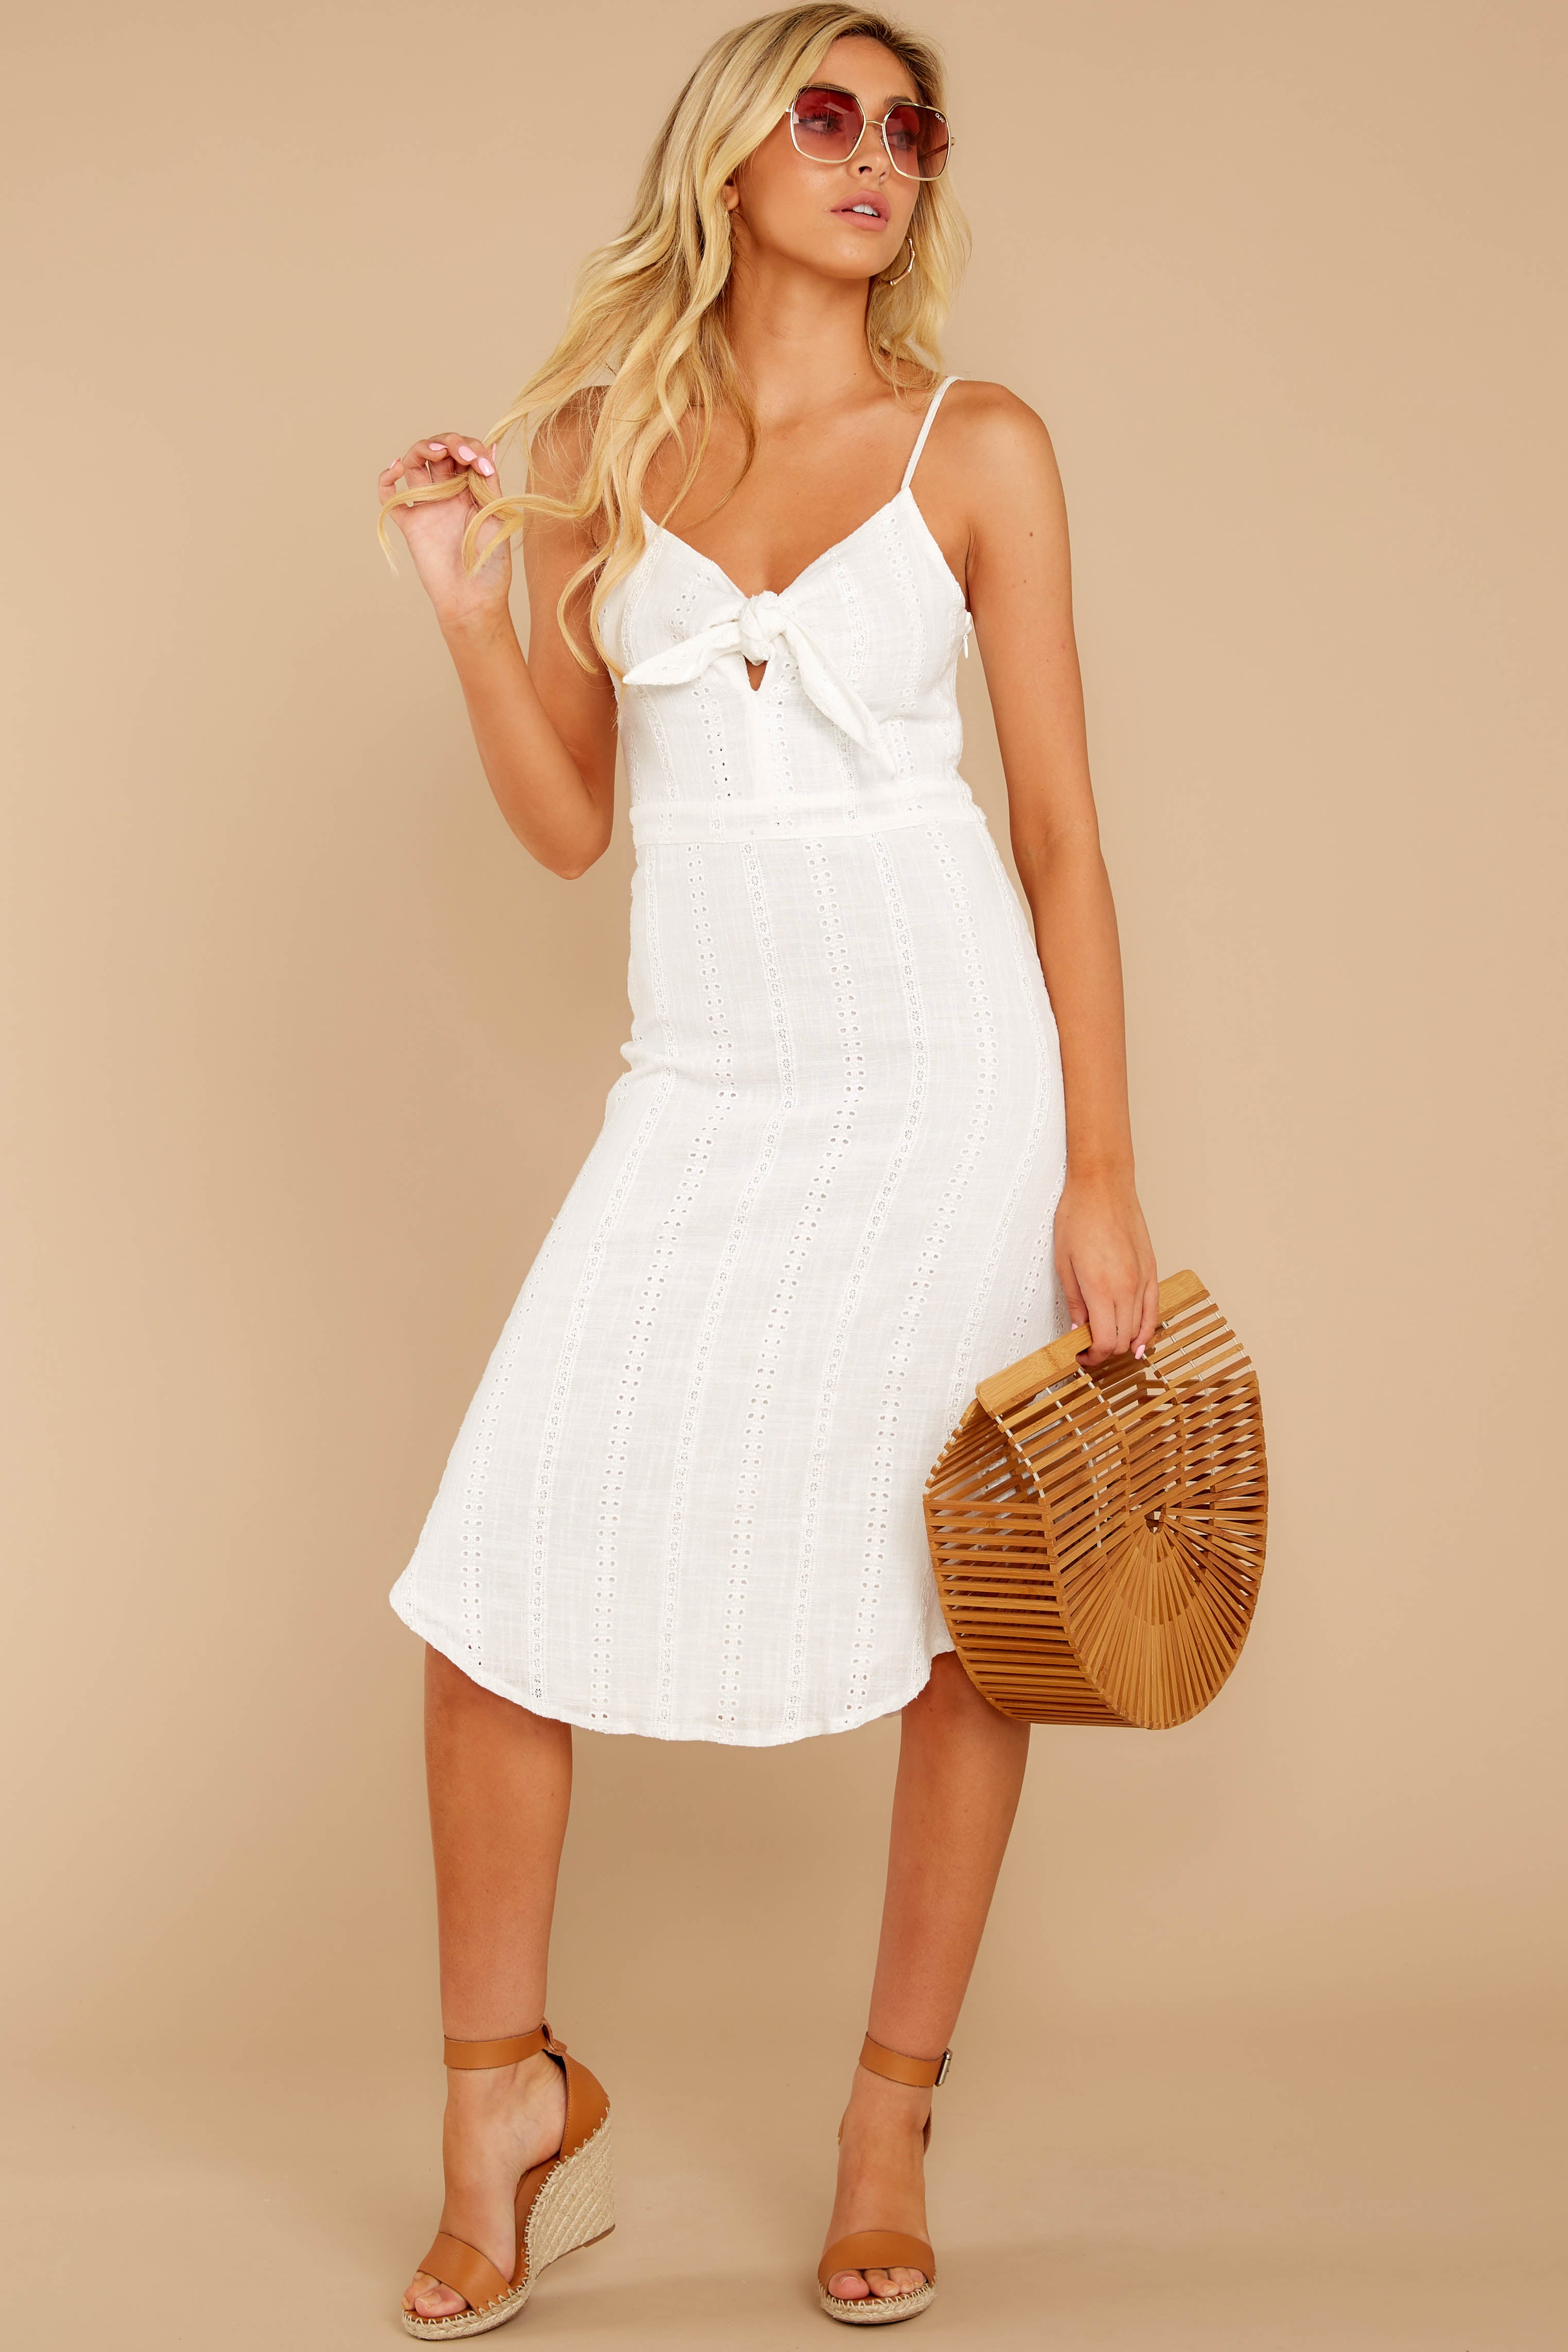 3 Impression Of Love White Eyelet Midi Dress at reddress.com